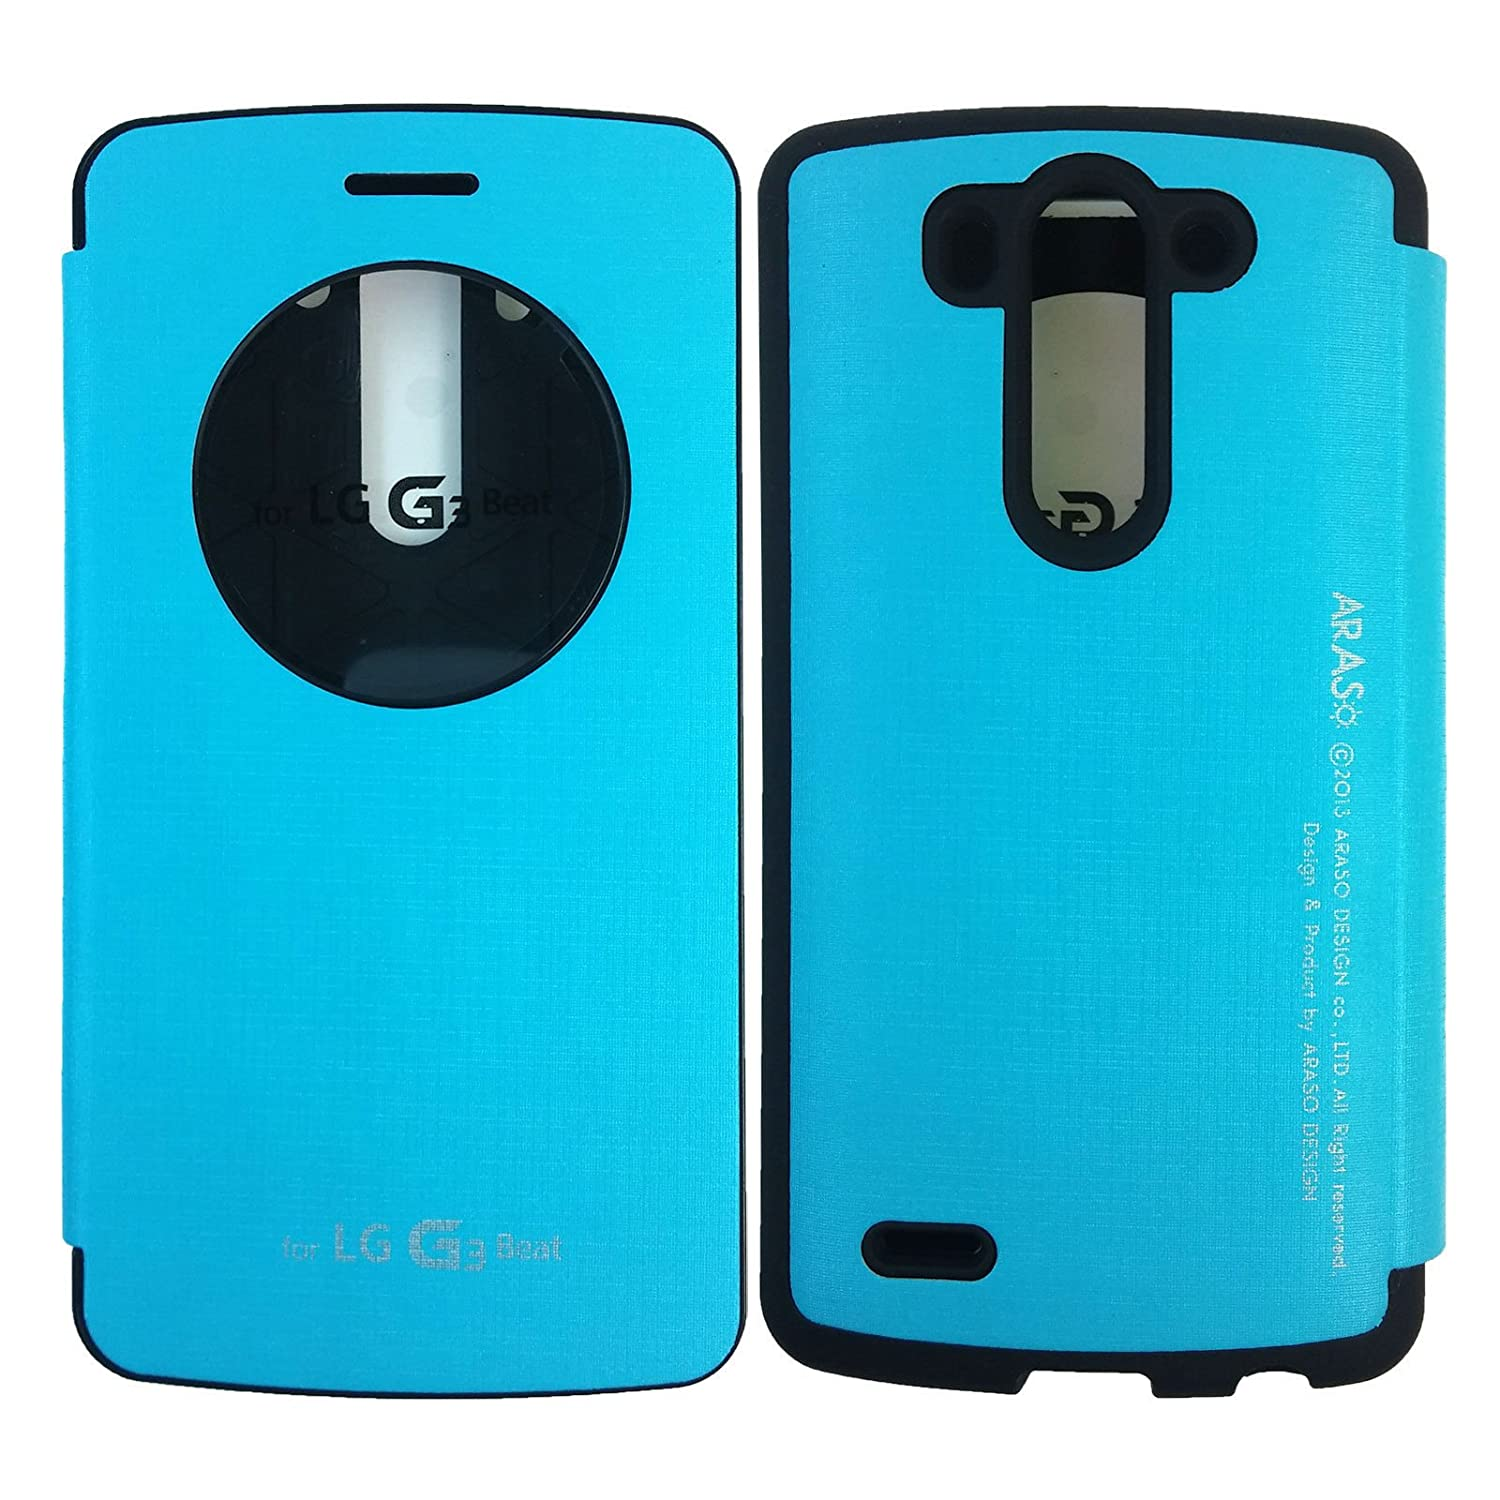 LG G3 Vigor Case,[Quick Circle View] Bumper Case PU Leather Flip Cover Magnetic closure Anti Shock Protective Case for LG G3 Vigor (Compatible with LG G3 Beat, G3 Mini Version Only) lg g3 s